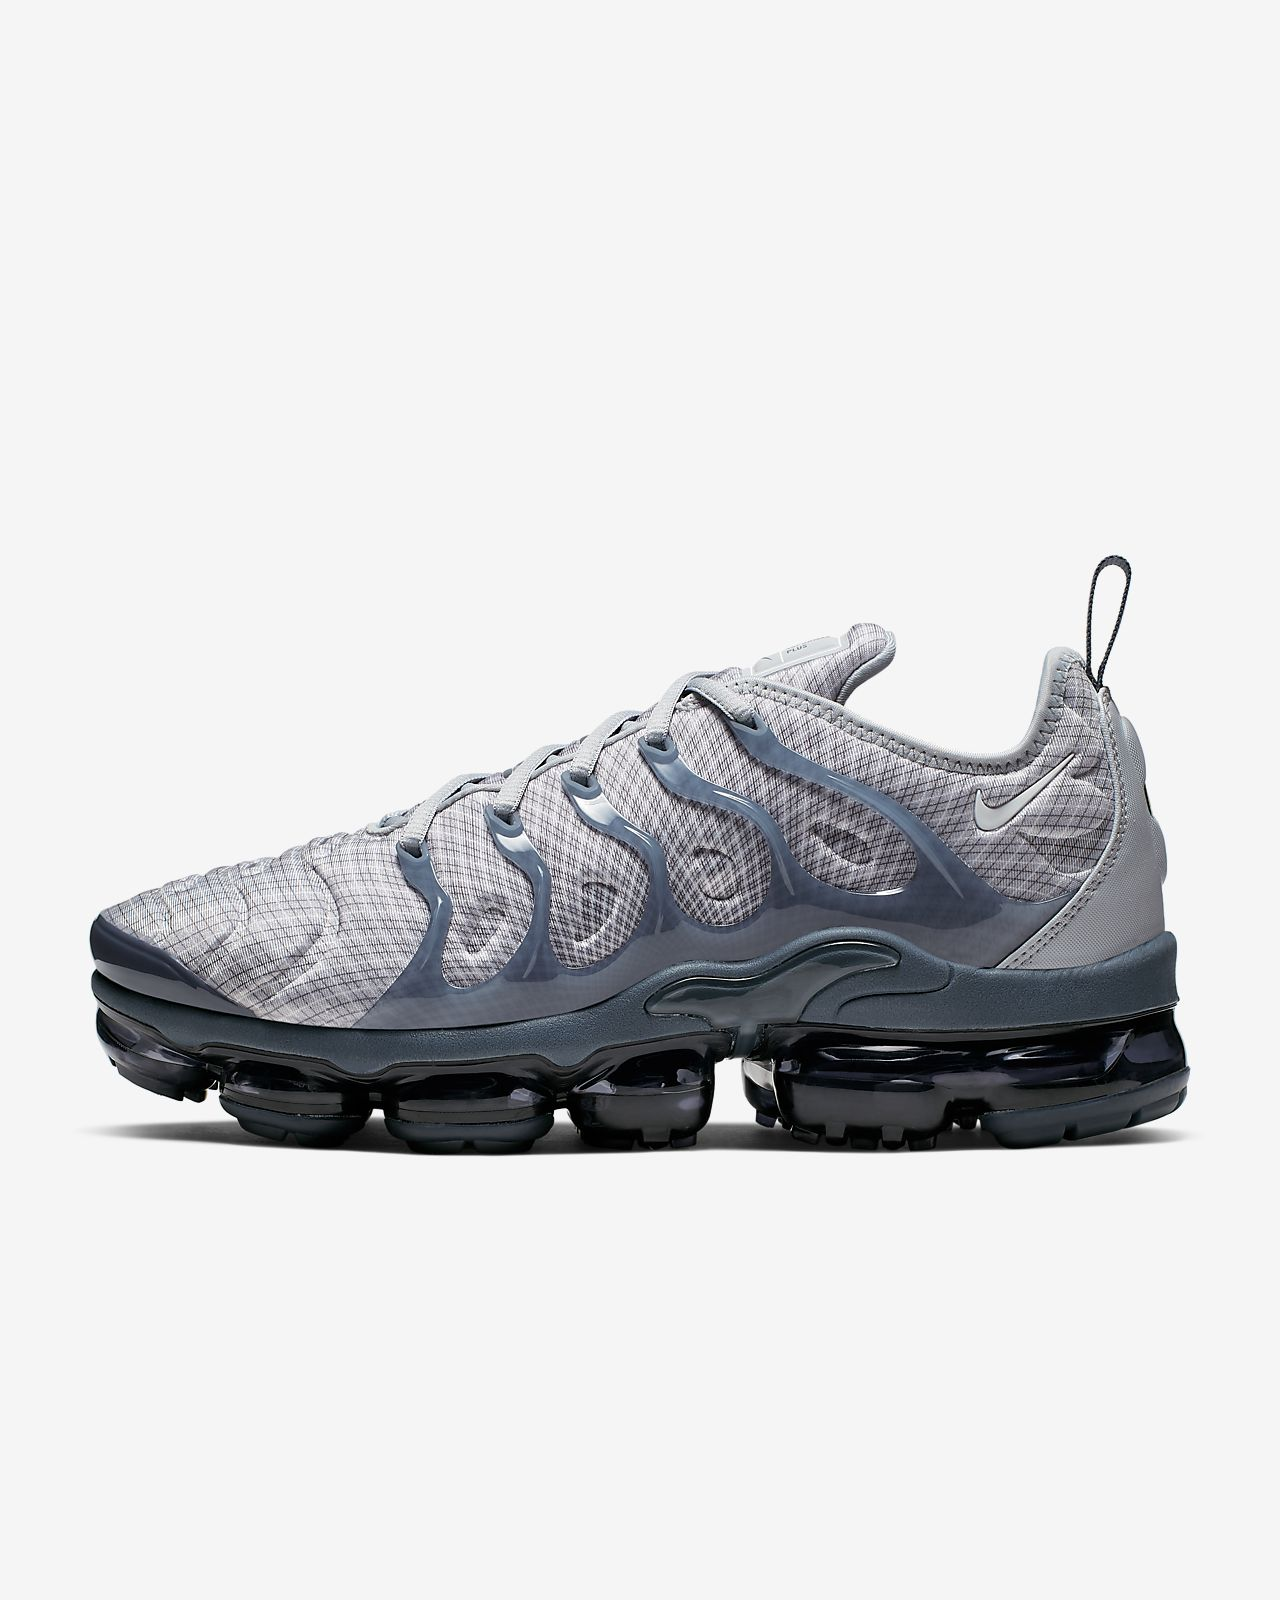 Nike Air Max Plus TN Ultra Tuned 898015 100 Grey Blue UK7.5